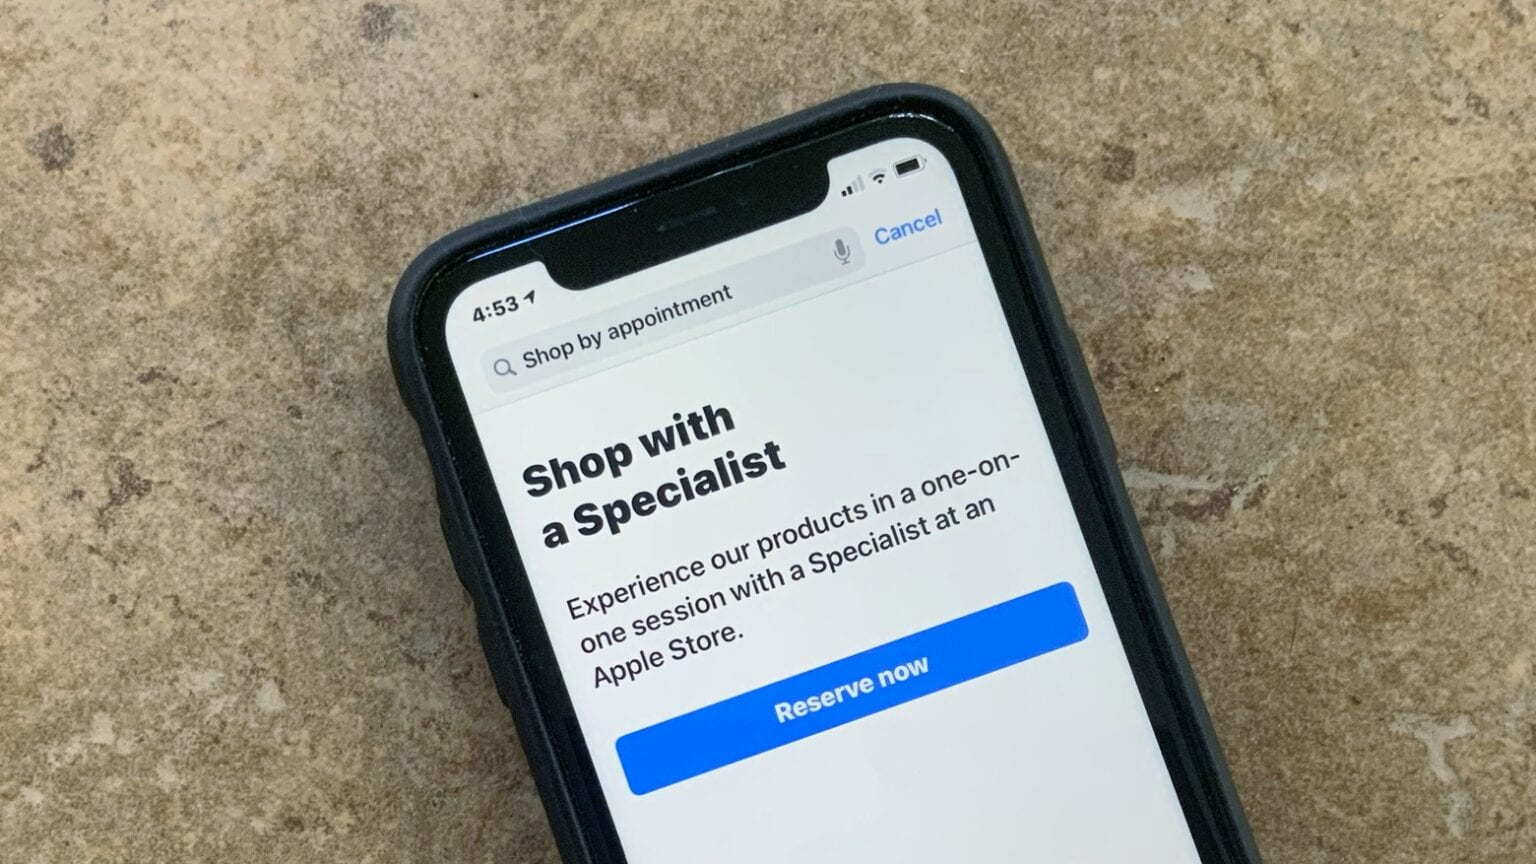 TO deal with COVID-19, Apple Store offer 'Shop with a Specialist' service.